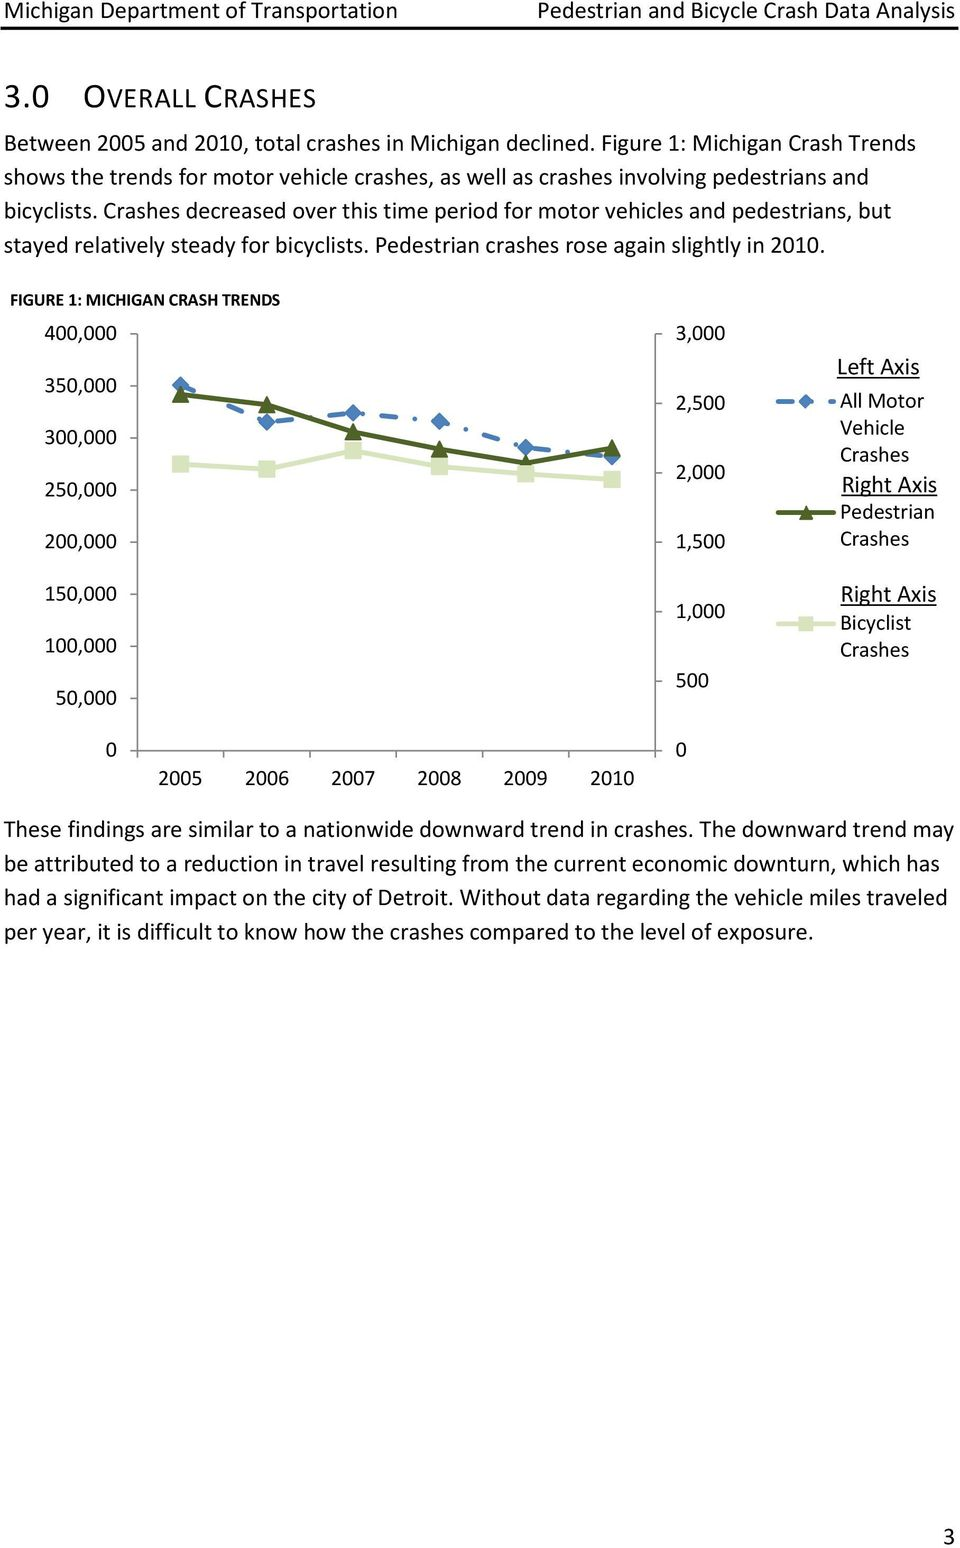 Crashes decreased over this time period for motor vehicles and pedestrians, but stayed relatively steady for bicyclists. Pedestrian crashes rose again slightly in 2010.